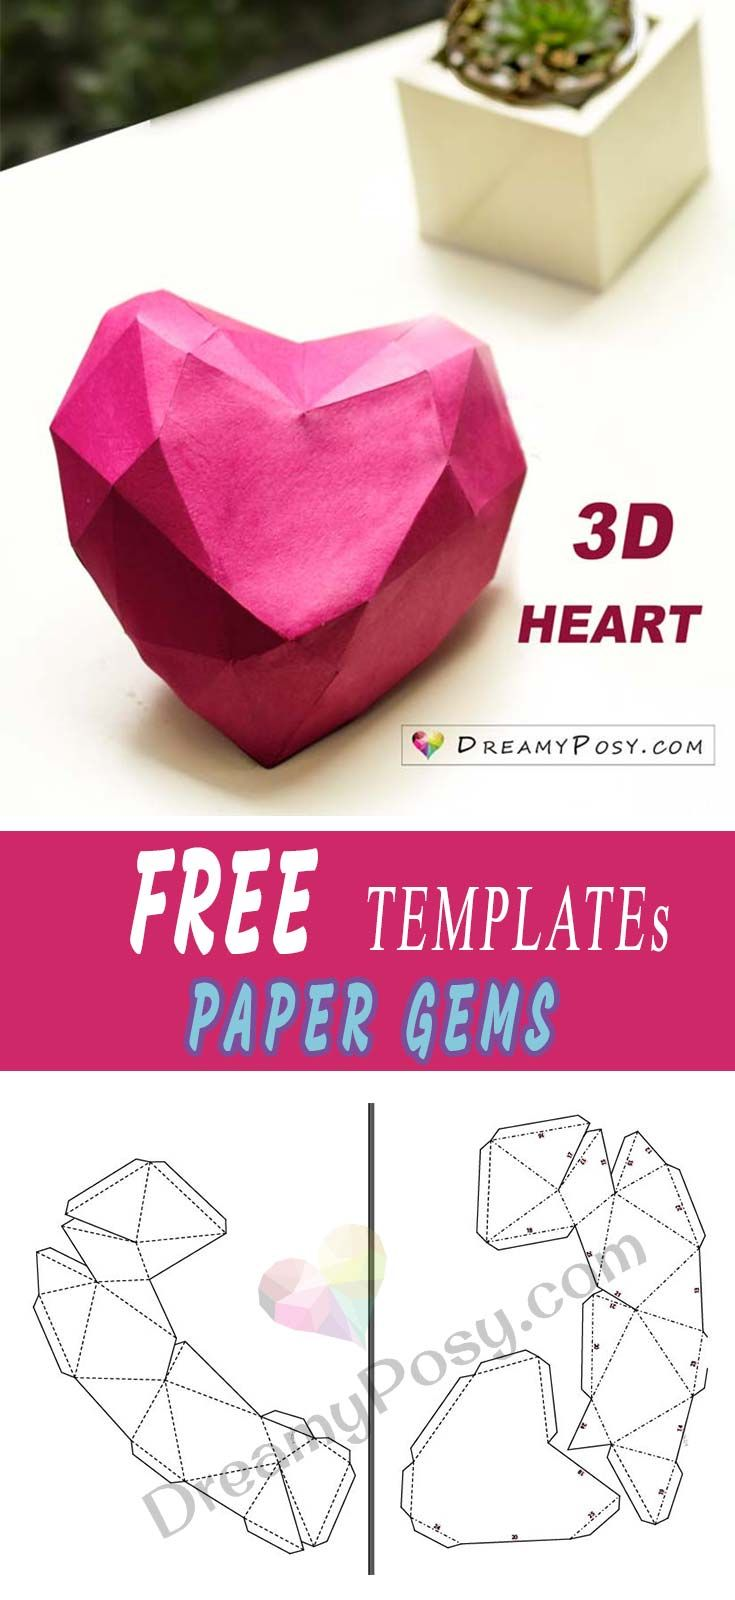 Paper gems with free template and tutorial